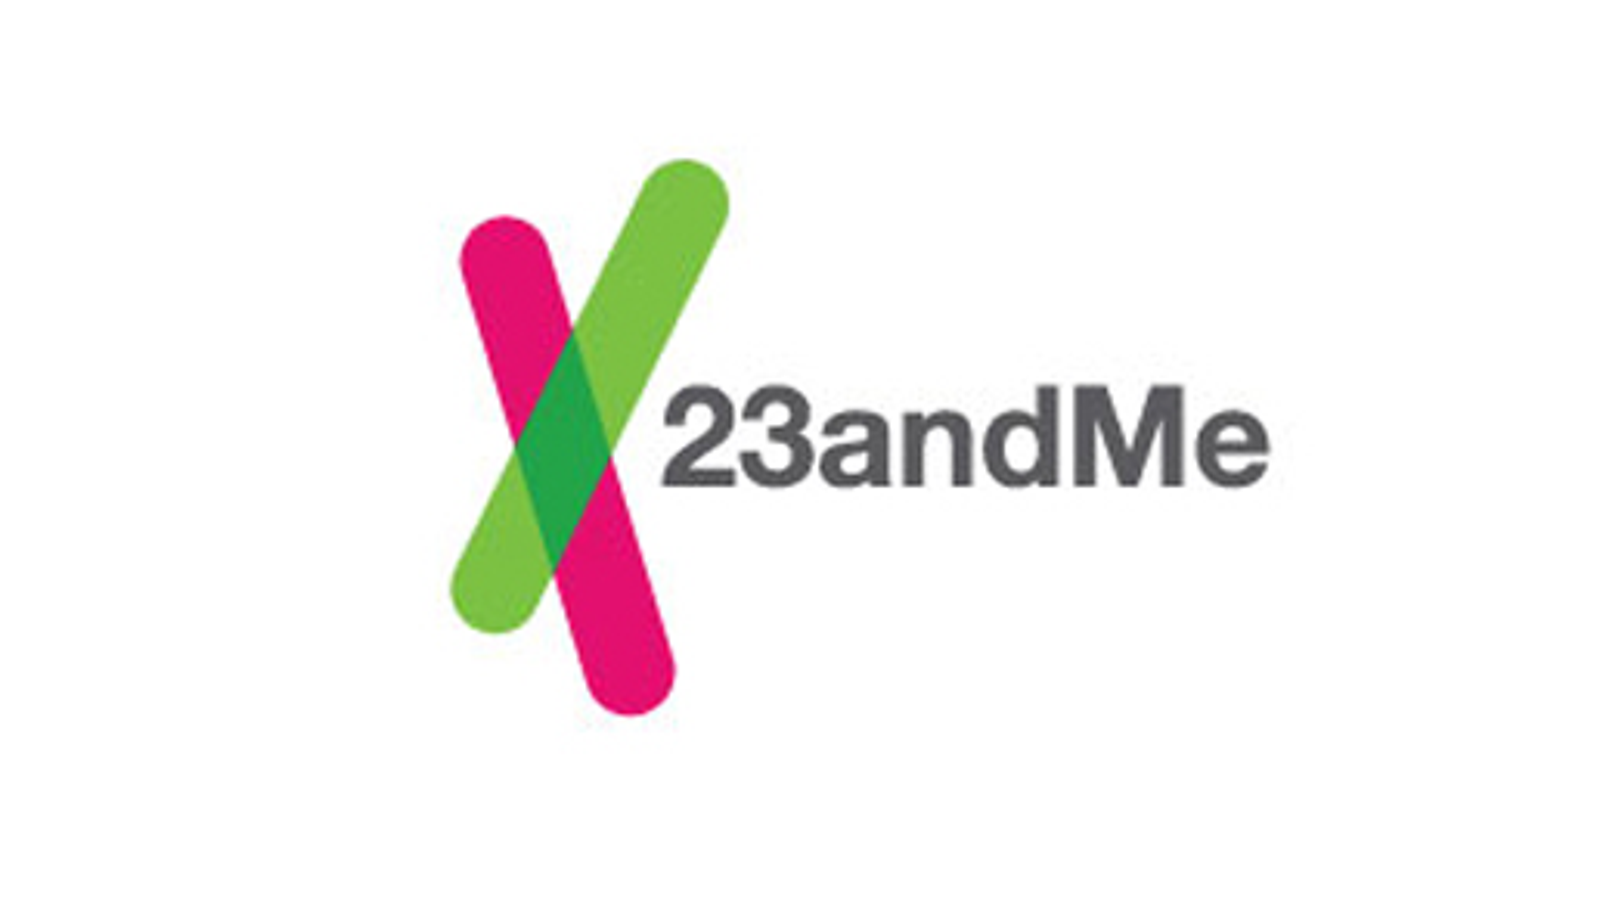 b1c2db1e17a Of Course 23andMe's Plan Has Been to Sell Your Genetic Data All Along